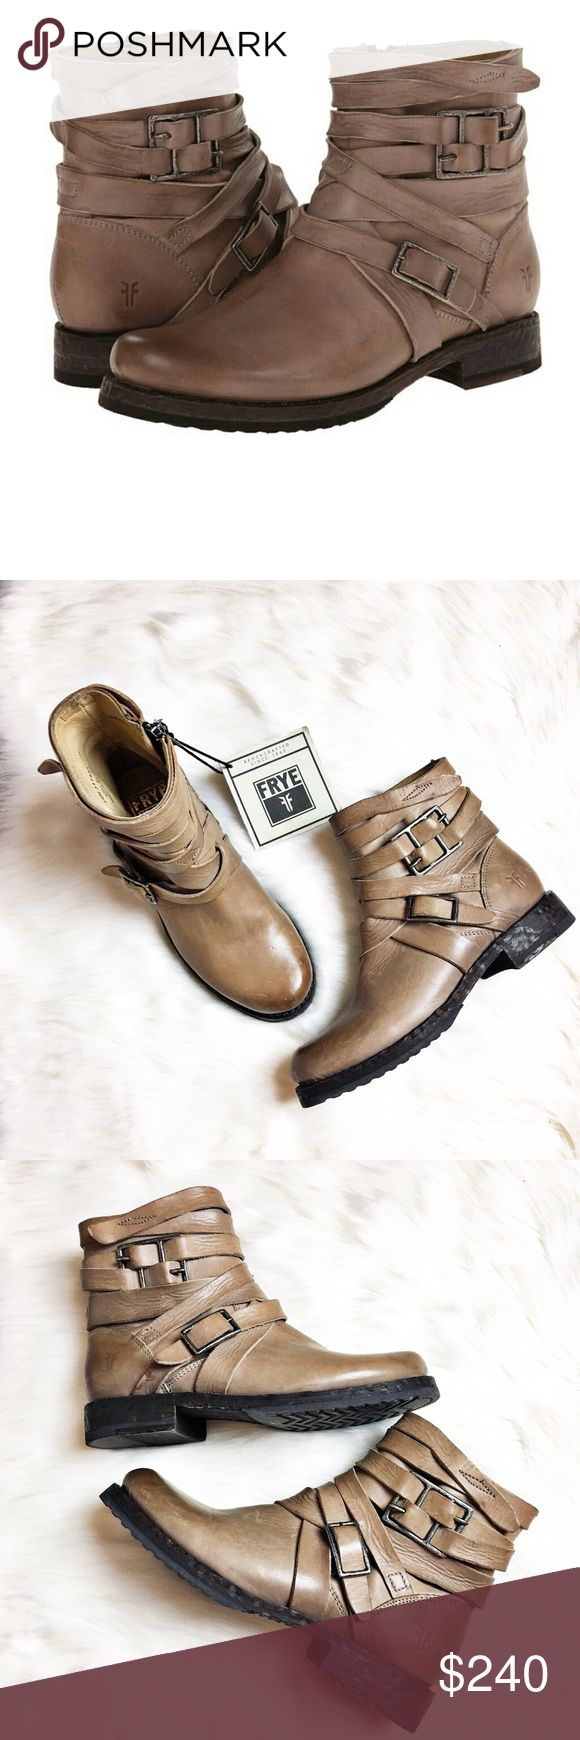 Frye Veronica Short Strappy Boot Super cute Frye Booties.  NWT but comes with no box.  Minor scuffs on toes of shoe from being against other shoes. Color states gray but these are tan/taupe IMO.  Features straps and brass colored hardware. Frye Shoes Ankle Boots & Booties